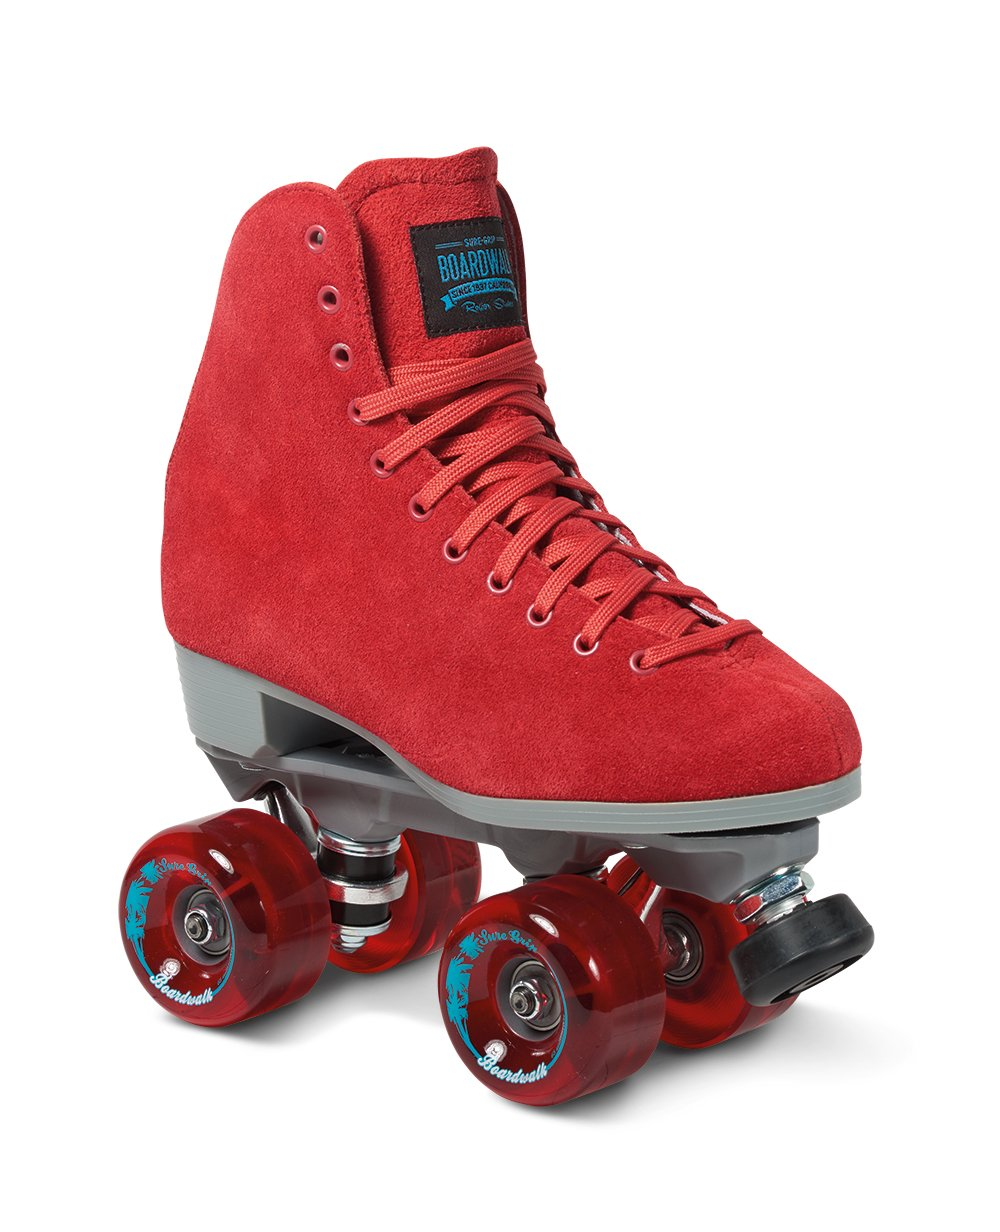 Roller skates red - Amazon Com Sure Grip Red Boardwalk Skates Outdoor Sports Outdoors